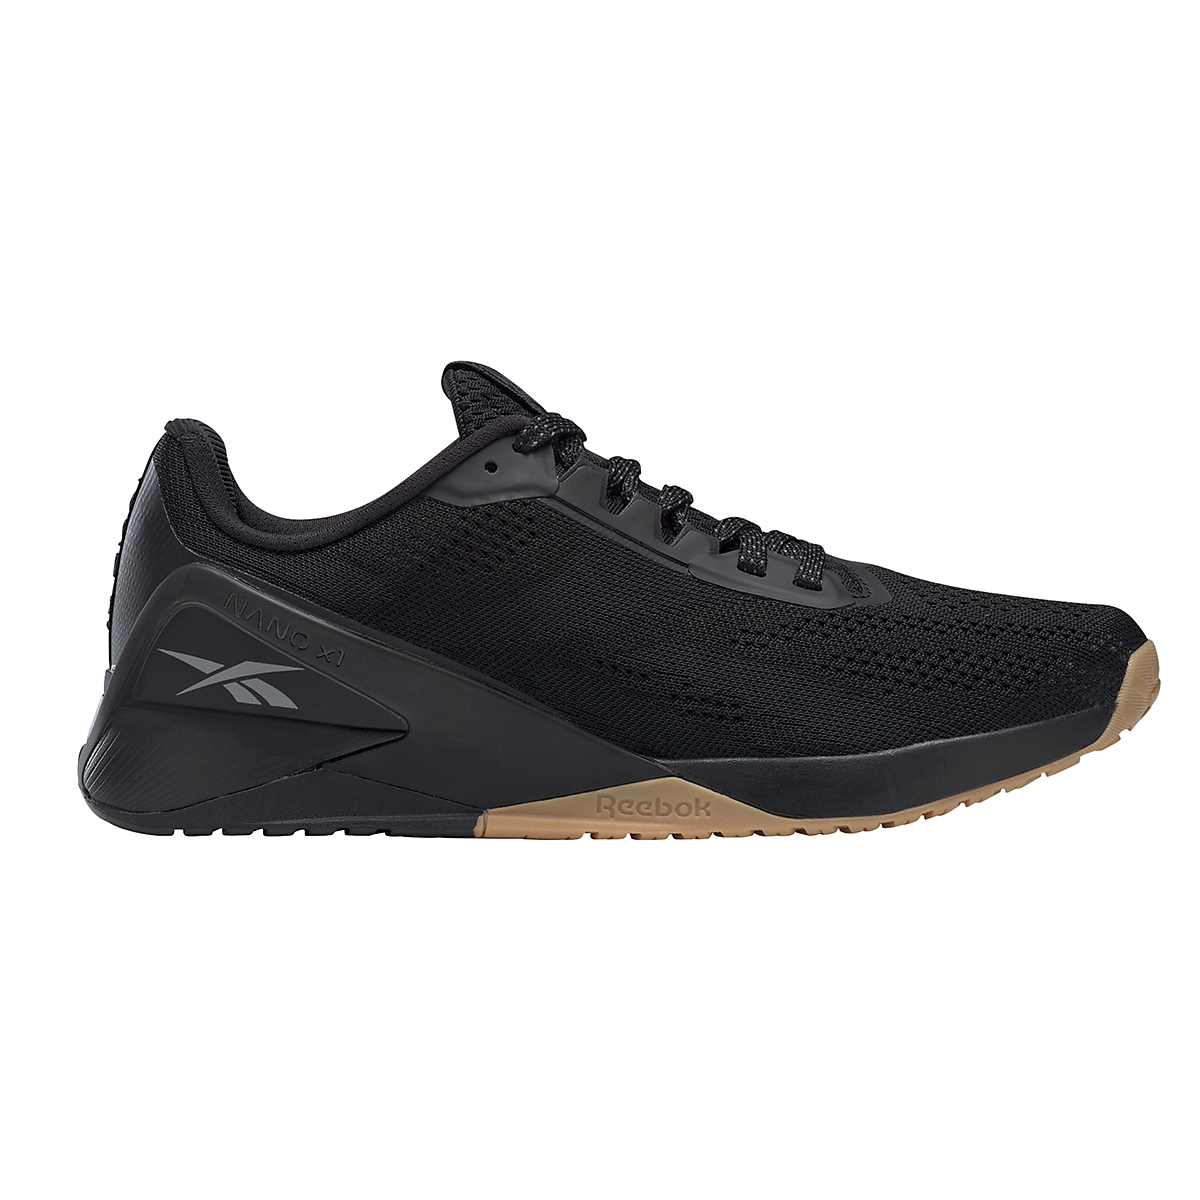 Men's Reebok Nano X1 Training Shoe - Color: Black/Night Black/Rubber Gum - Size: 6.5 - Width: Regular, Black/Night Black/Rubber Gum, large, image 1